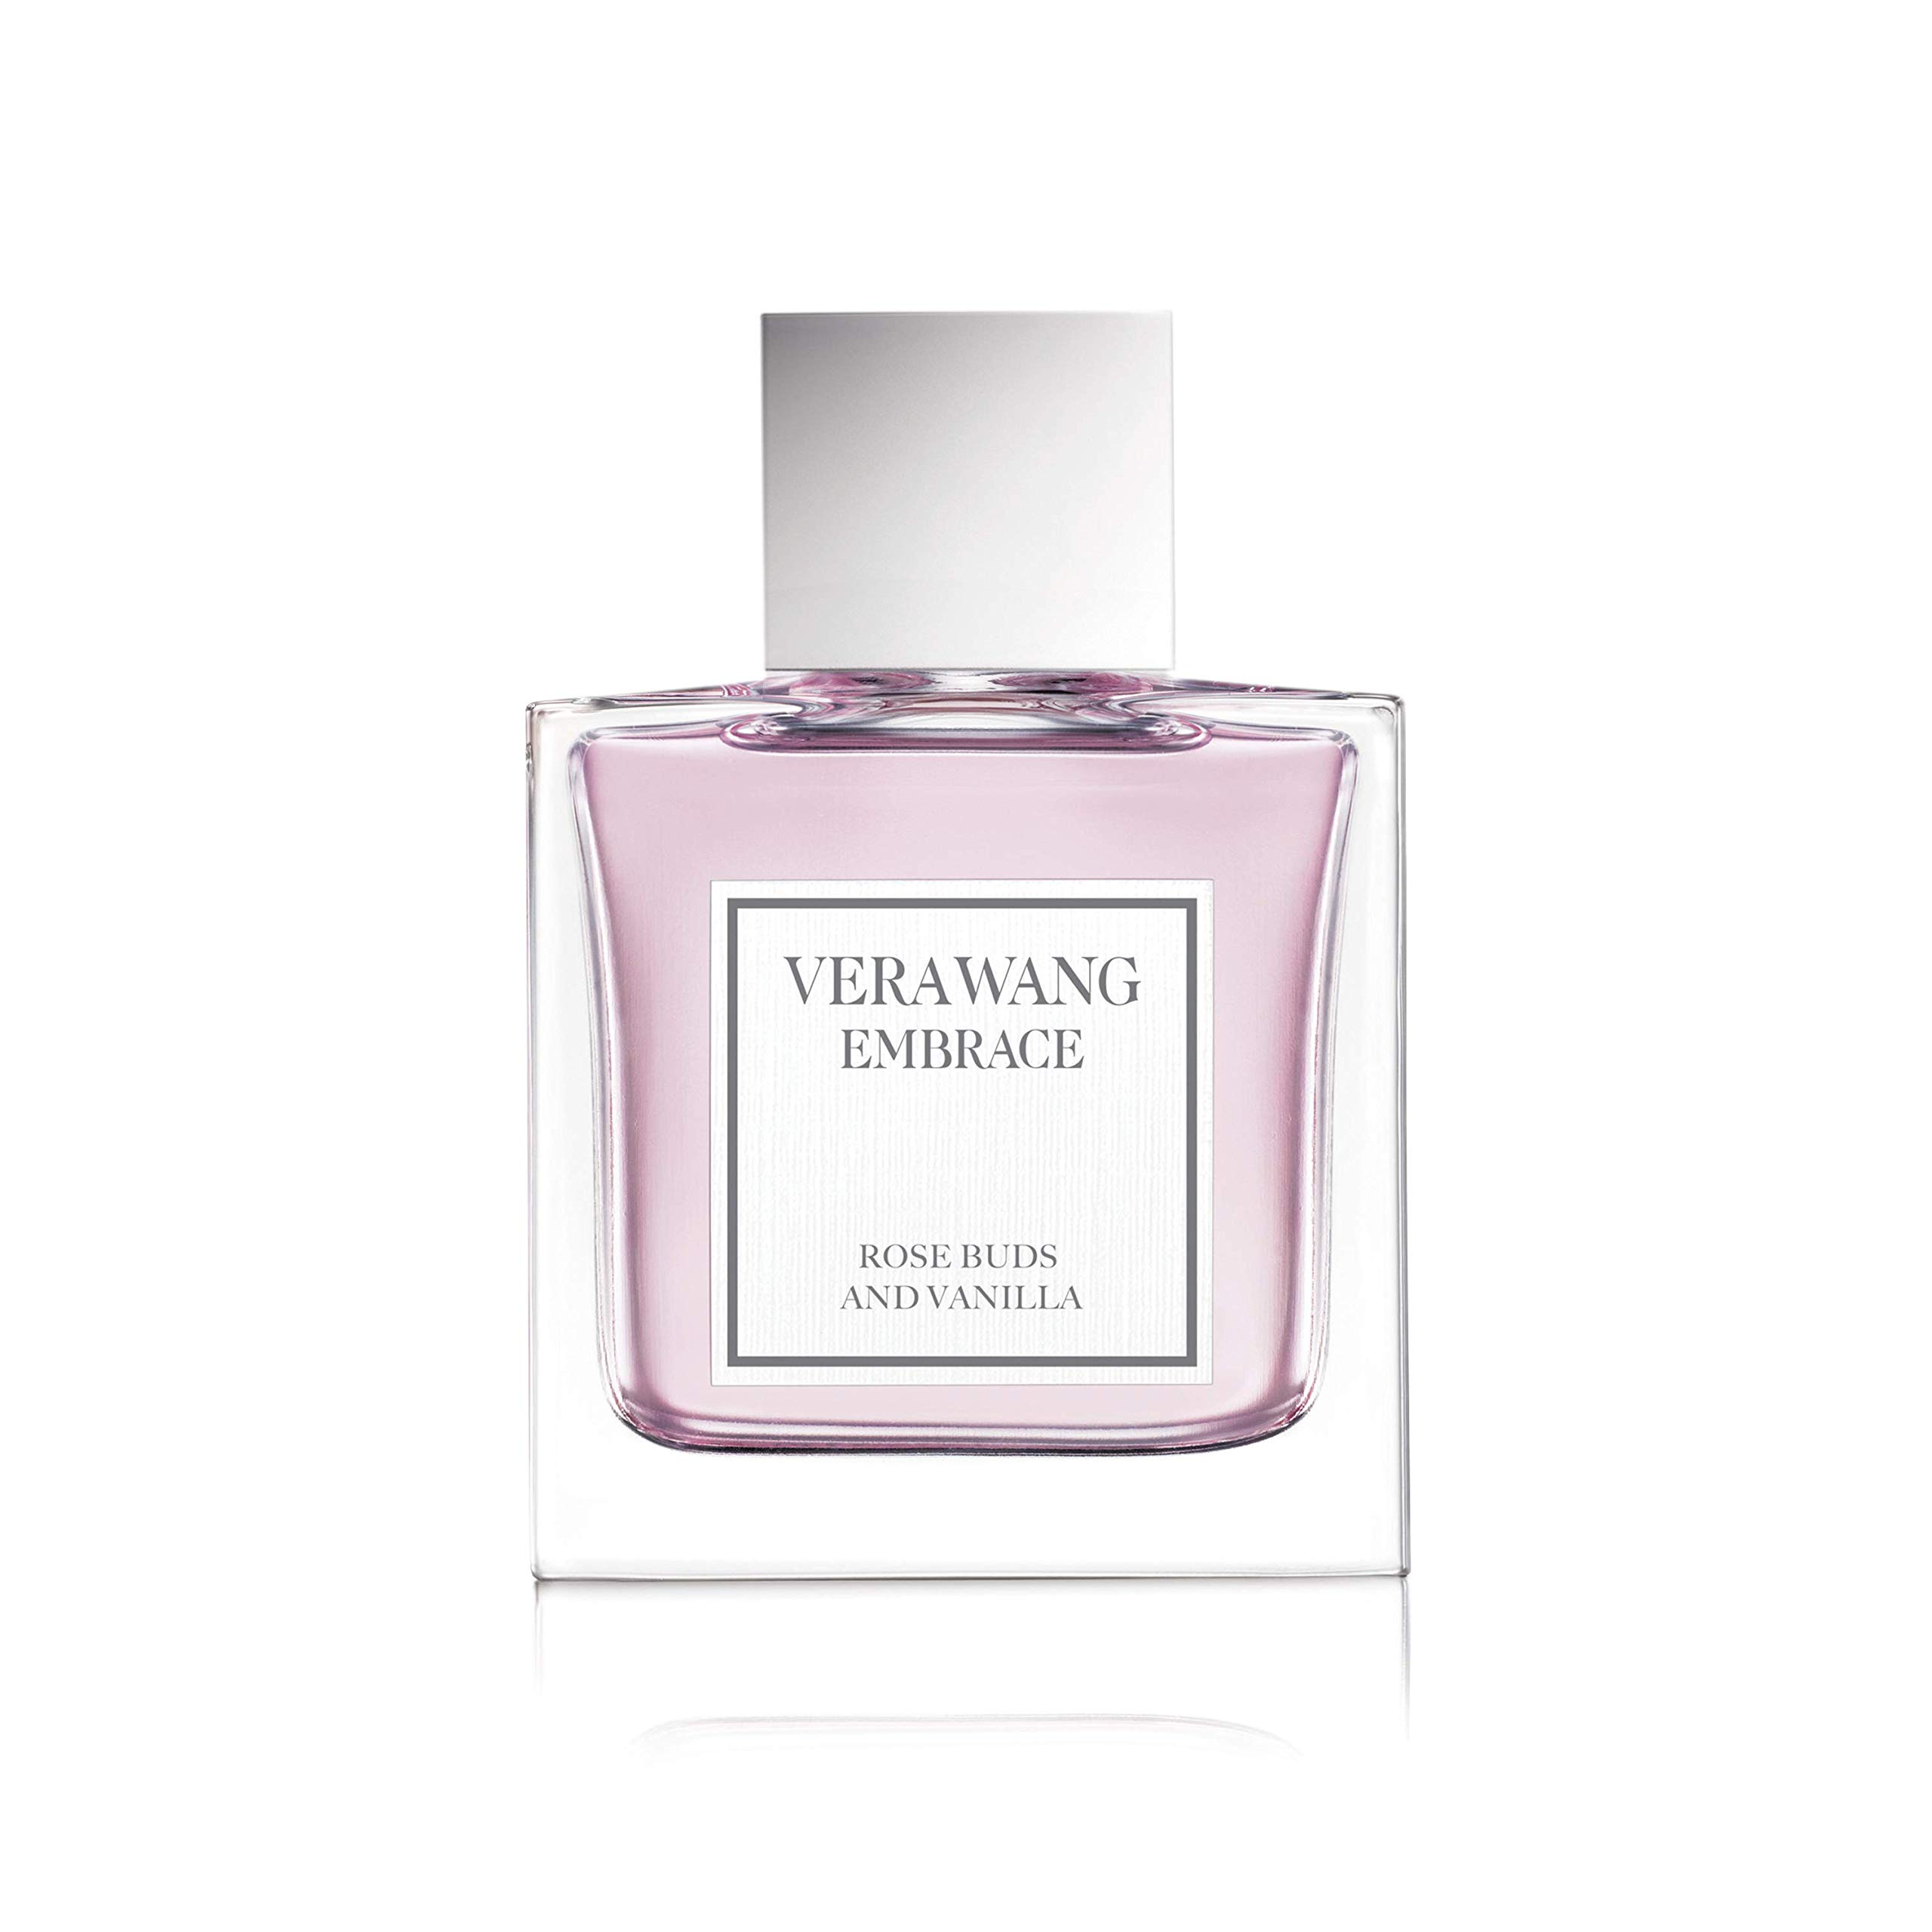 Vera Wang Embrace Eau de Toilette Rose Buds and Vanilla Scent 1 Fluid Oz. Women's Cologne Romantic, Floral and Warm Fragrance